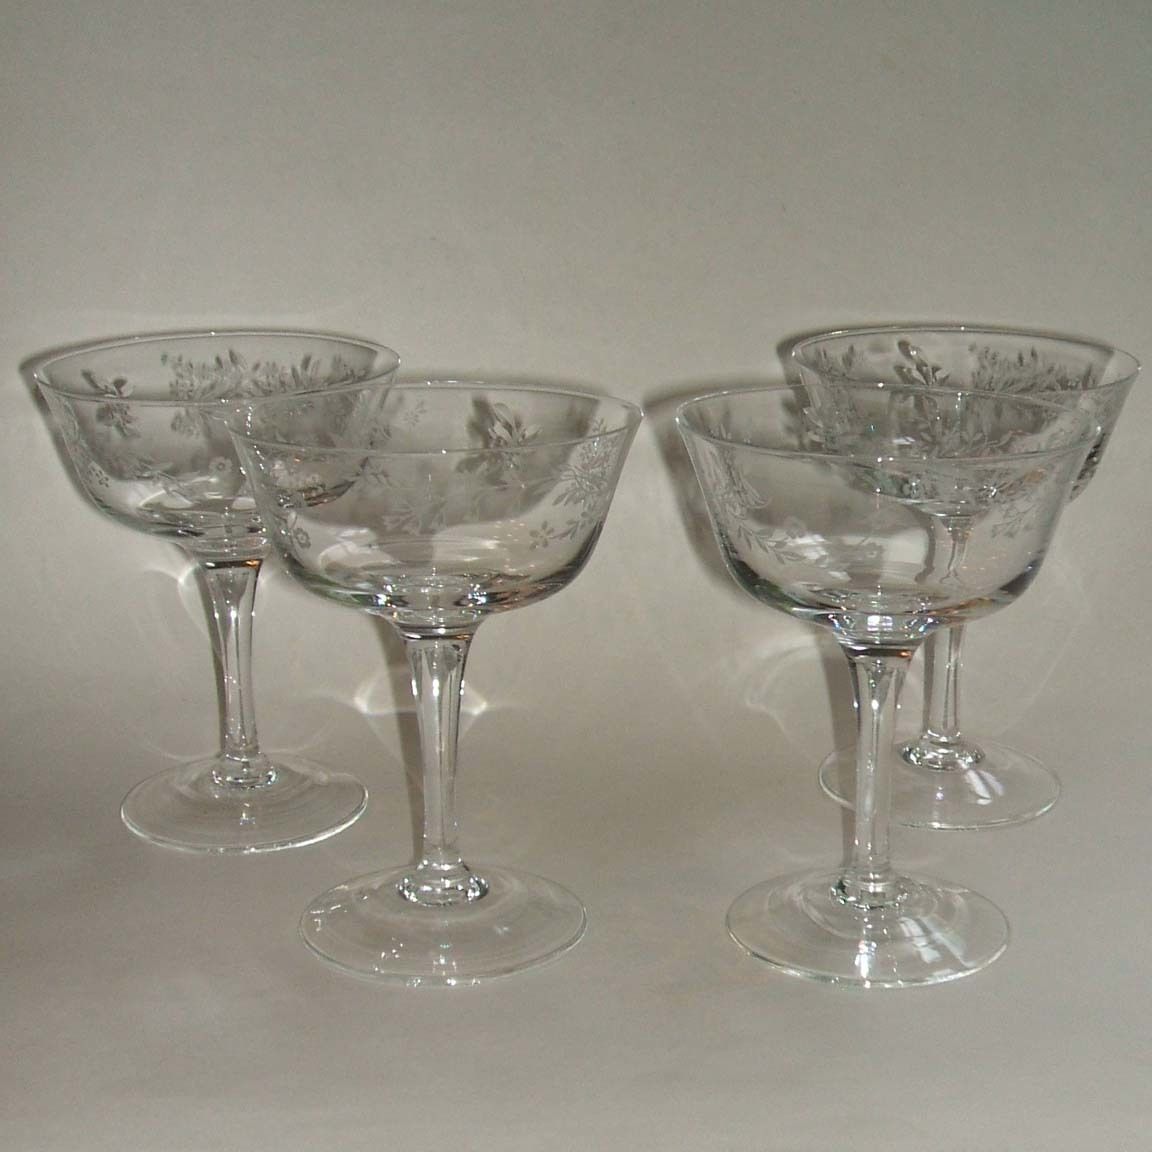 noritake carolyn crystal set of 4 sherbet coupe champagne glasses from missingmemories on ruby lane. Black Bedroom Furniture Sets. Home Design Ideas